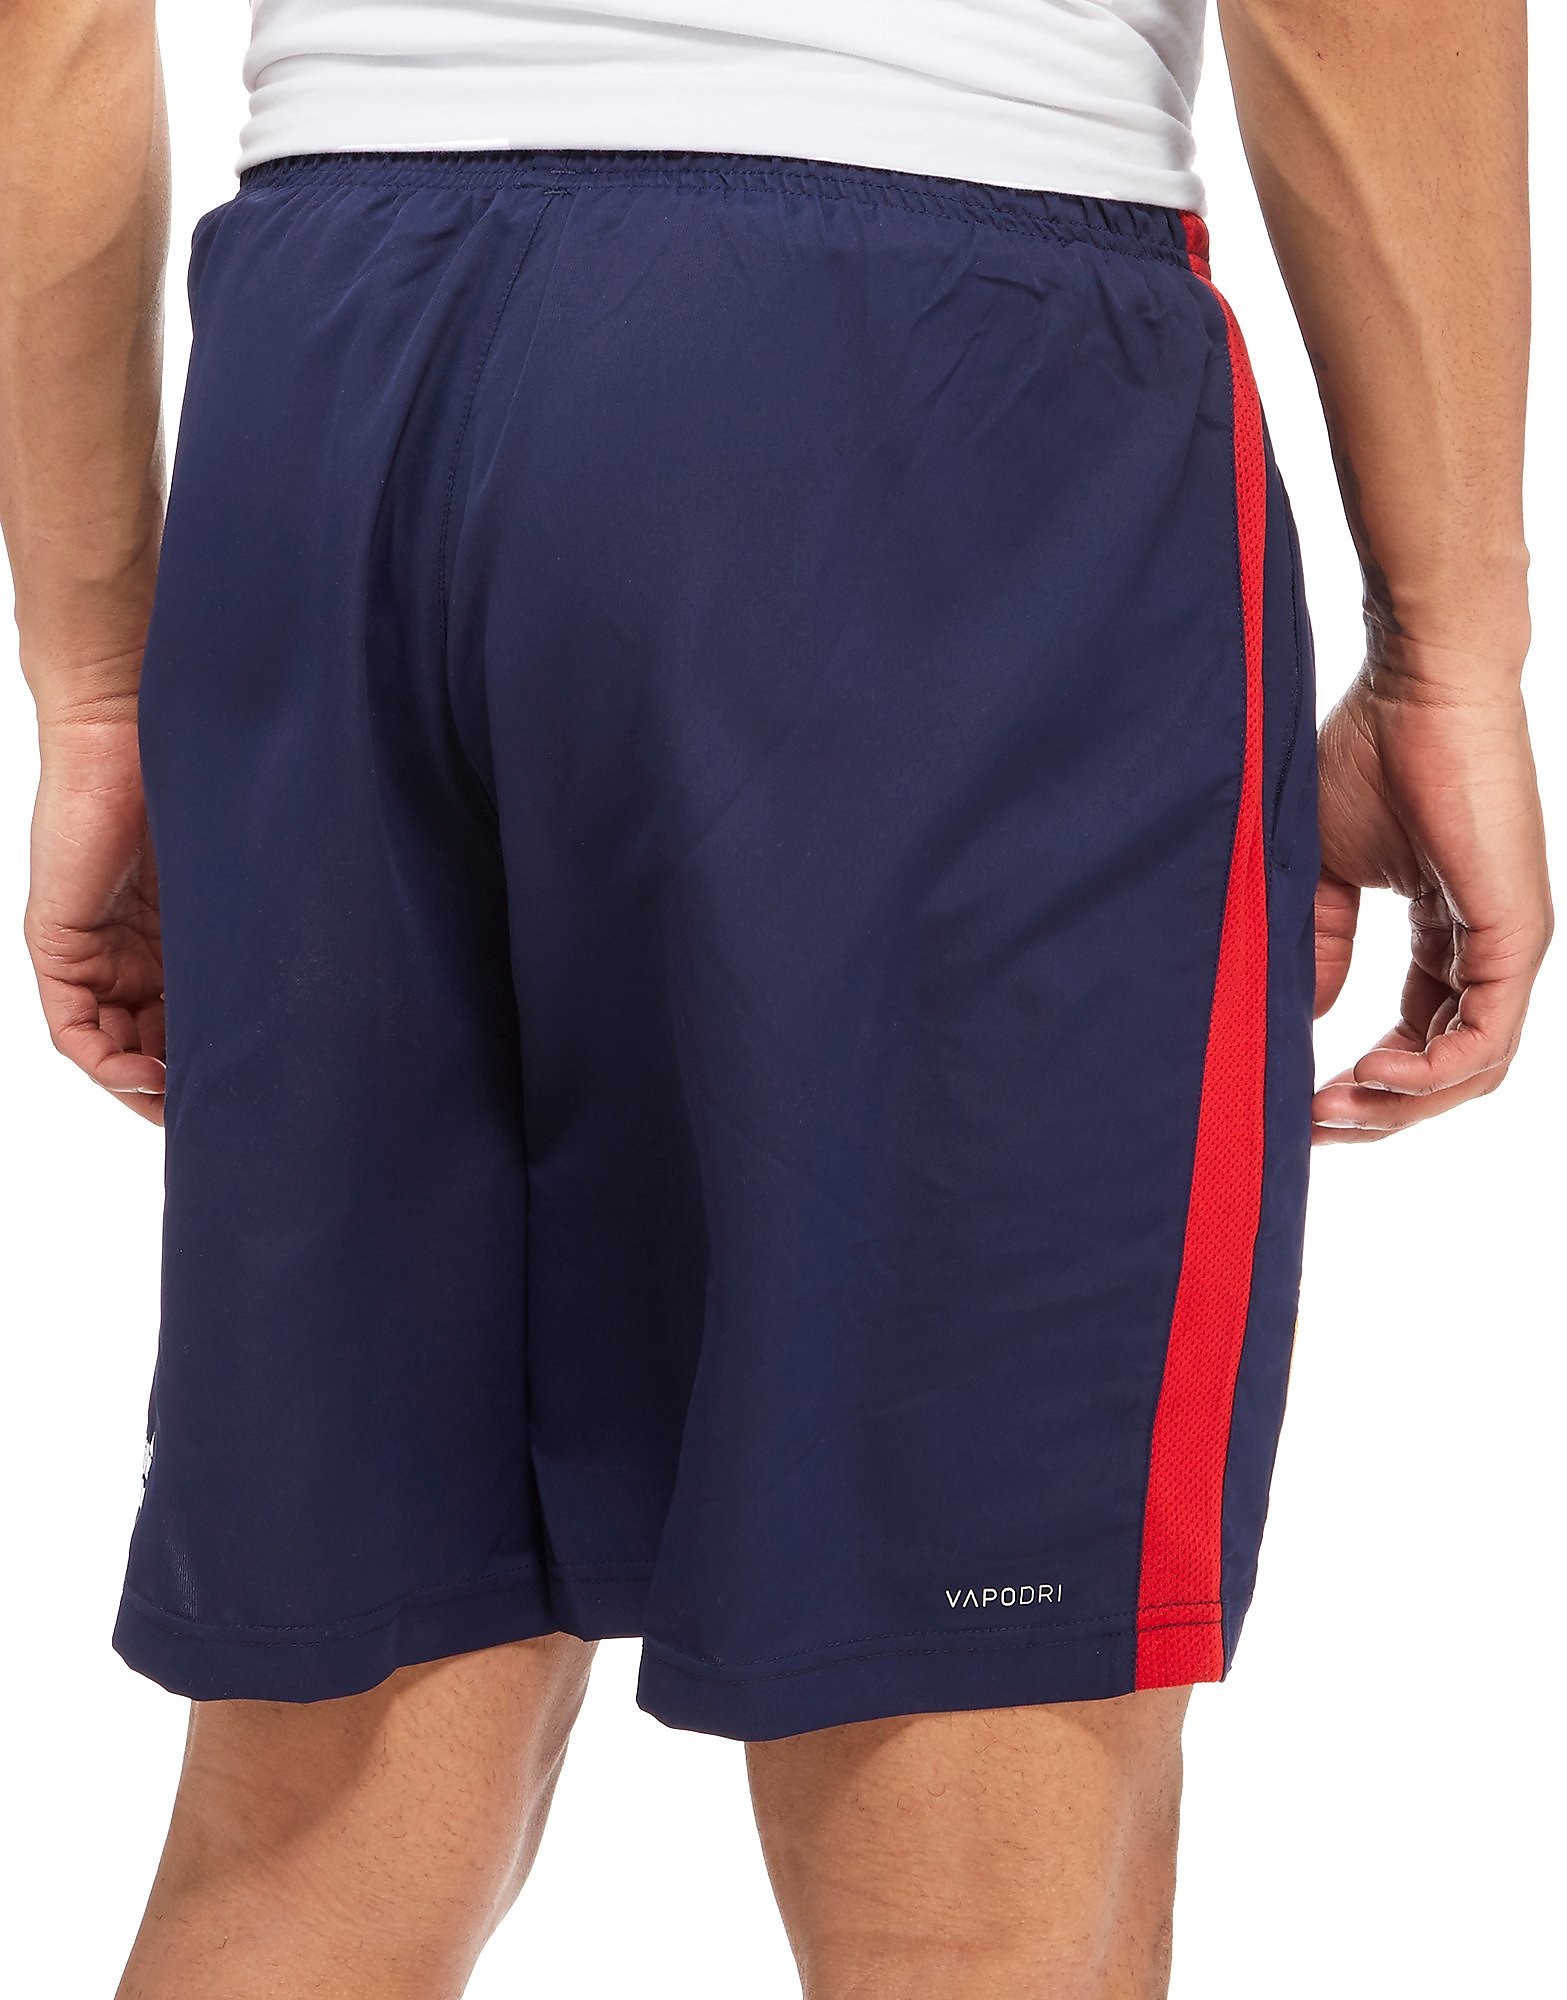 Canterbury British & Irish Lions 2017 Vapodri Gym Shorts